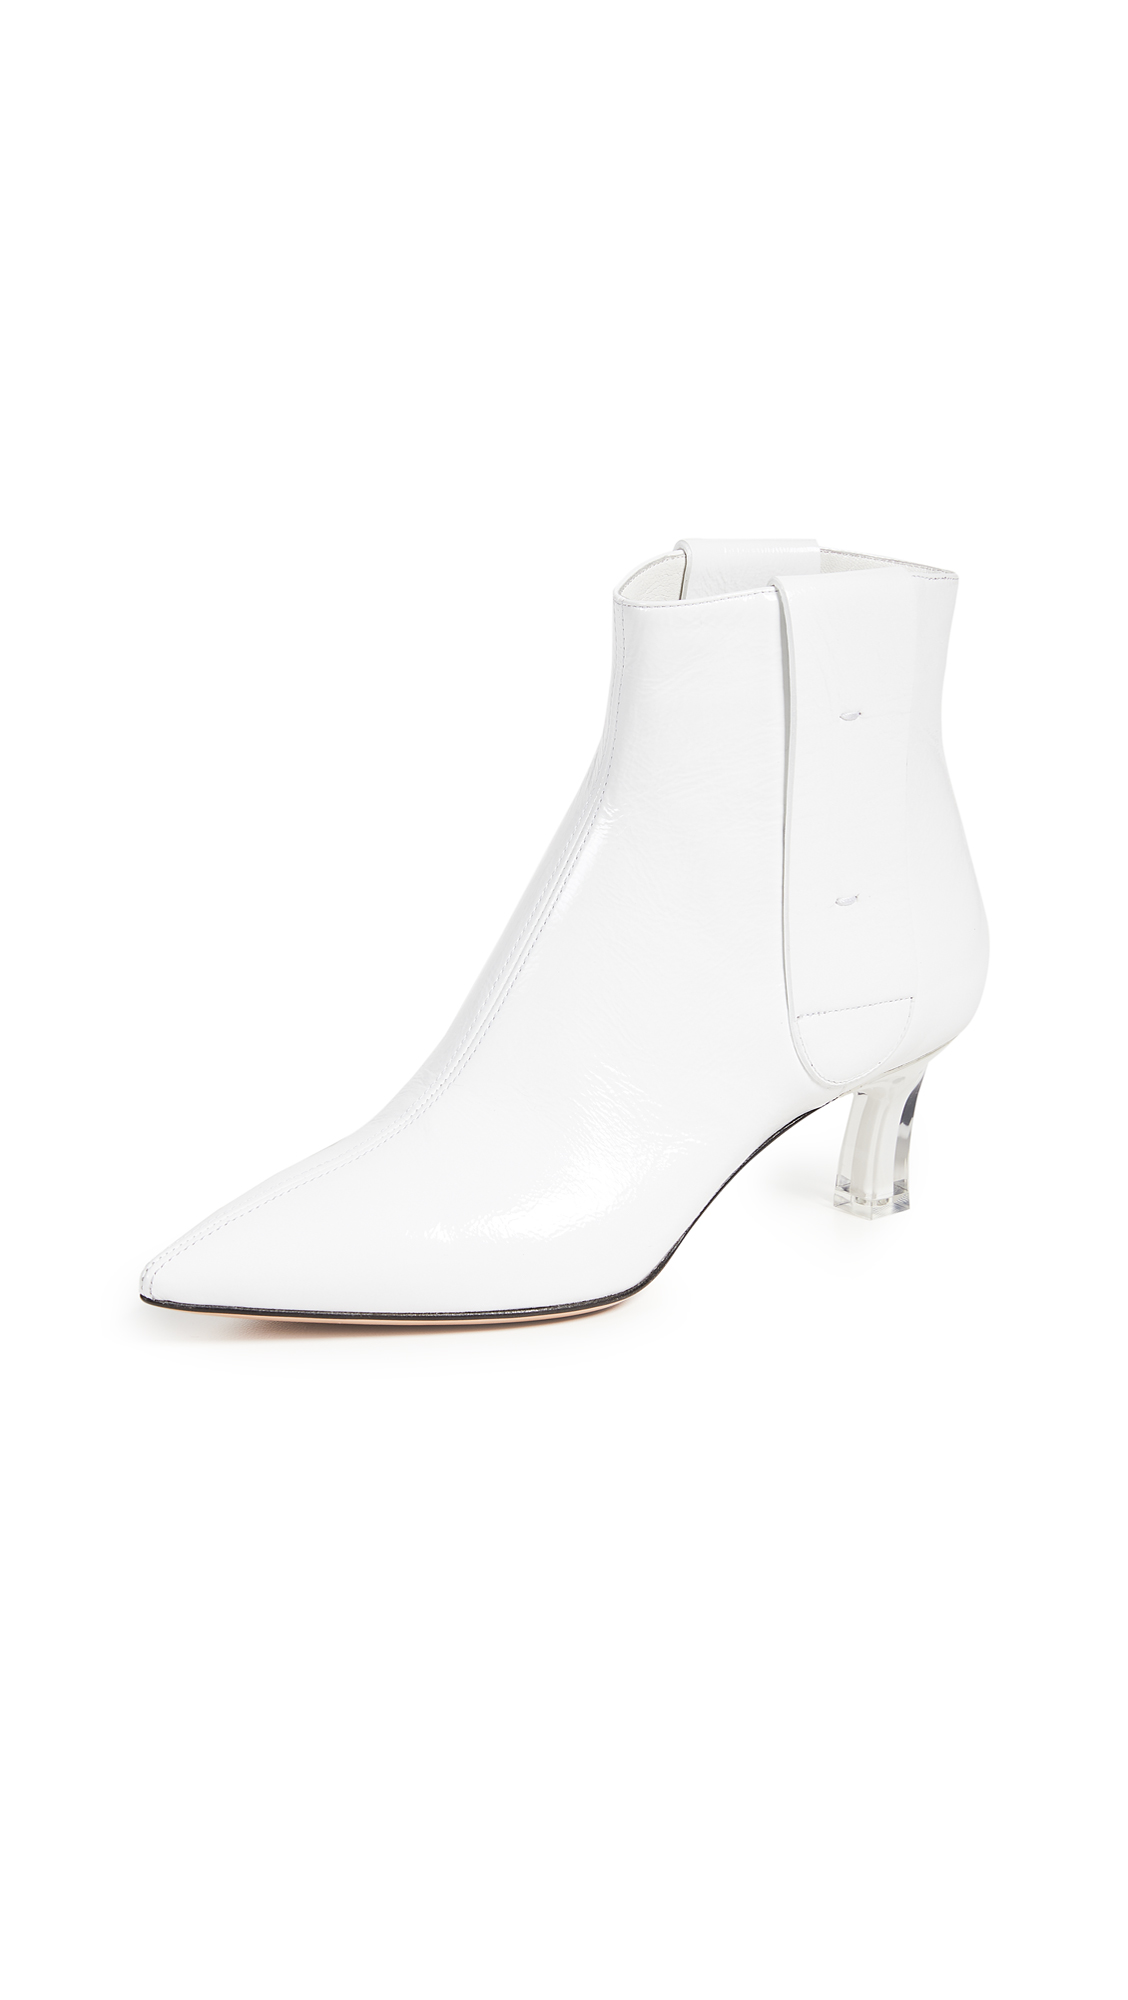 Casadei Chelsea Ankle Boots - Bianco